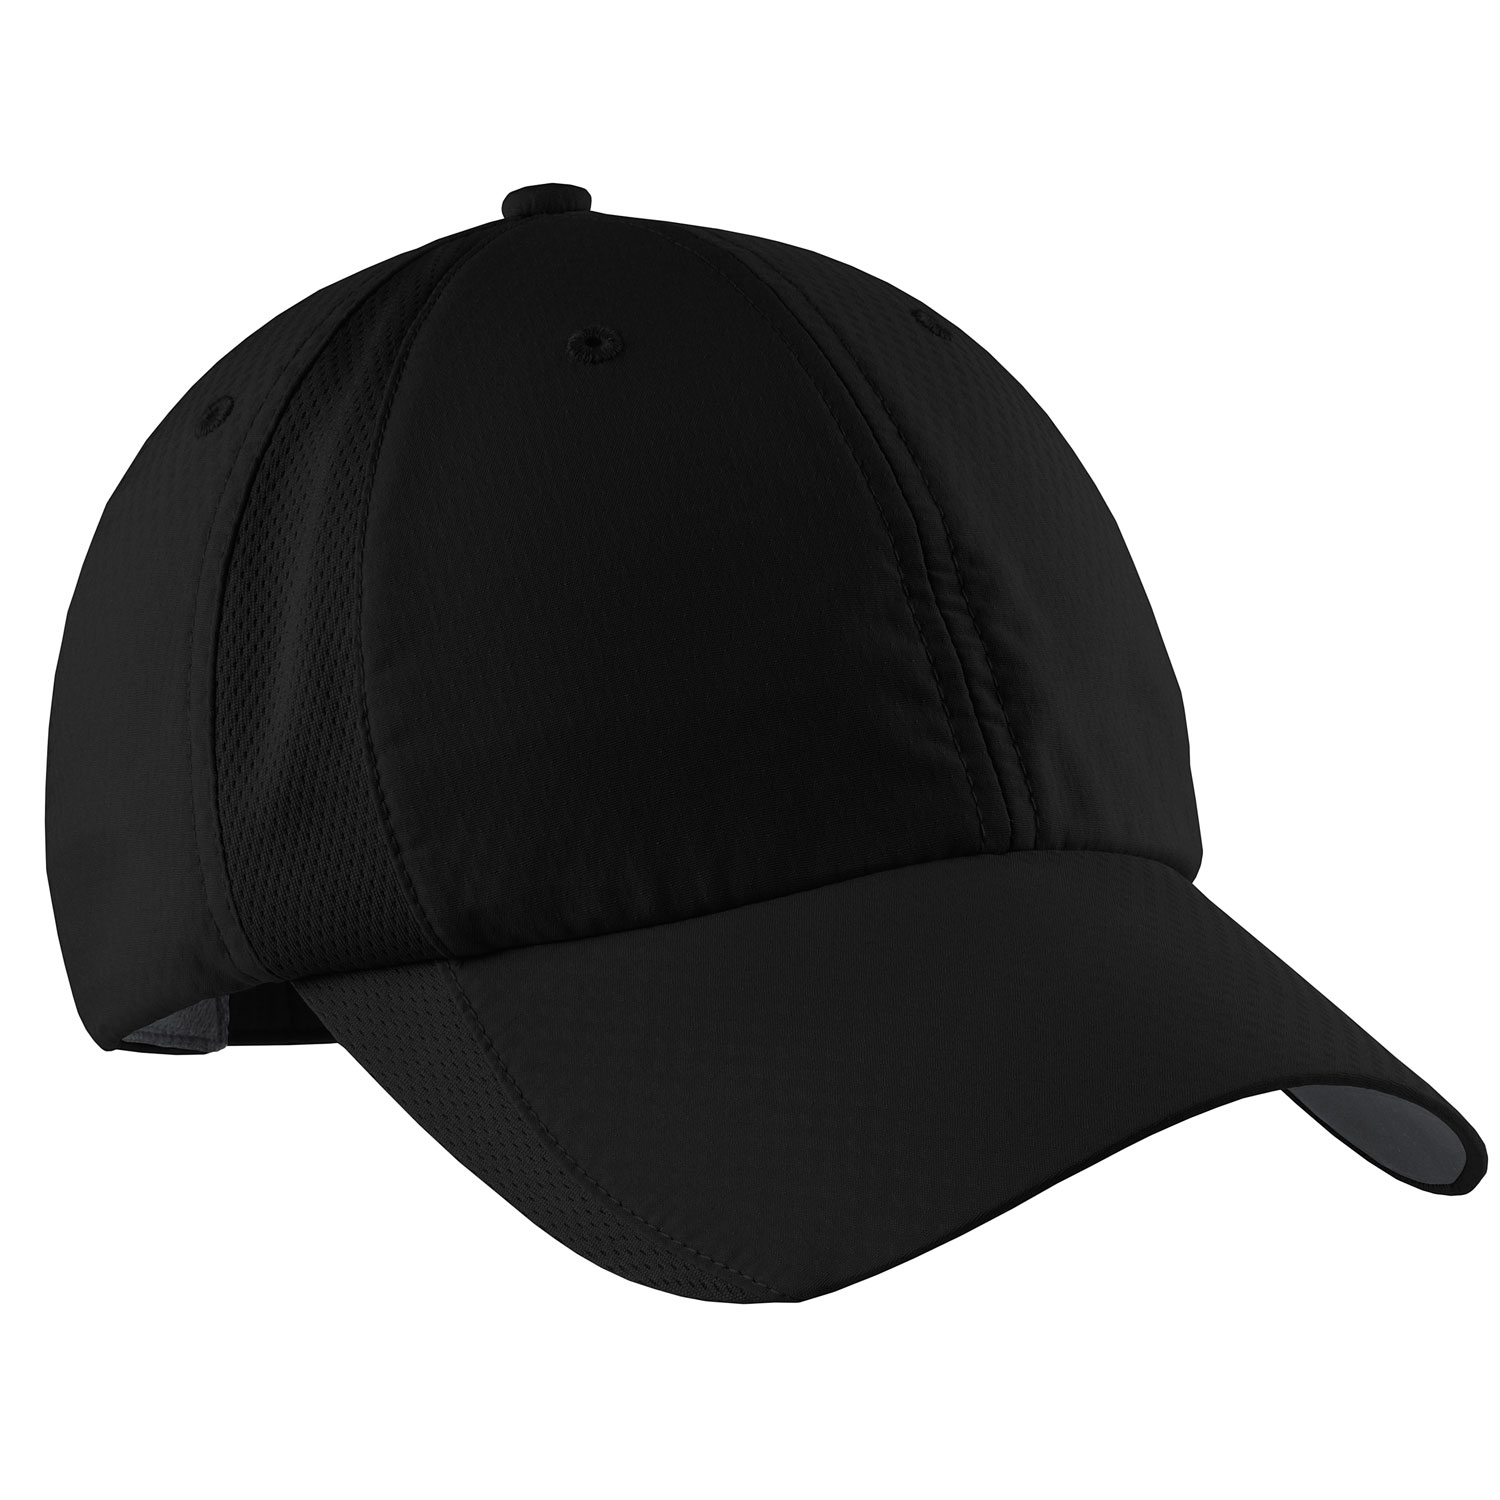 e73dfa72 Nike Sphere Dry Cap. $27.00. Prices include custom embroidery!